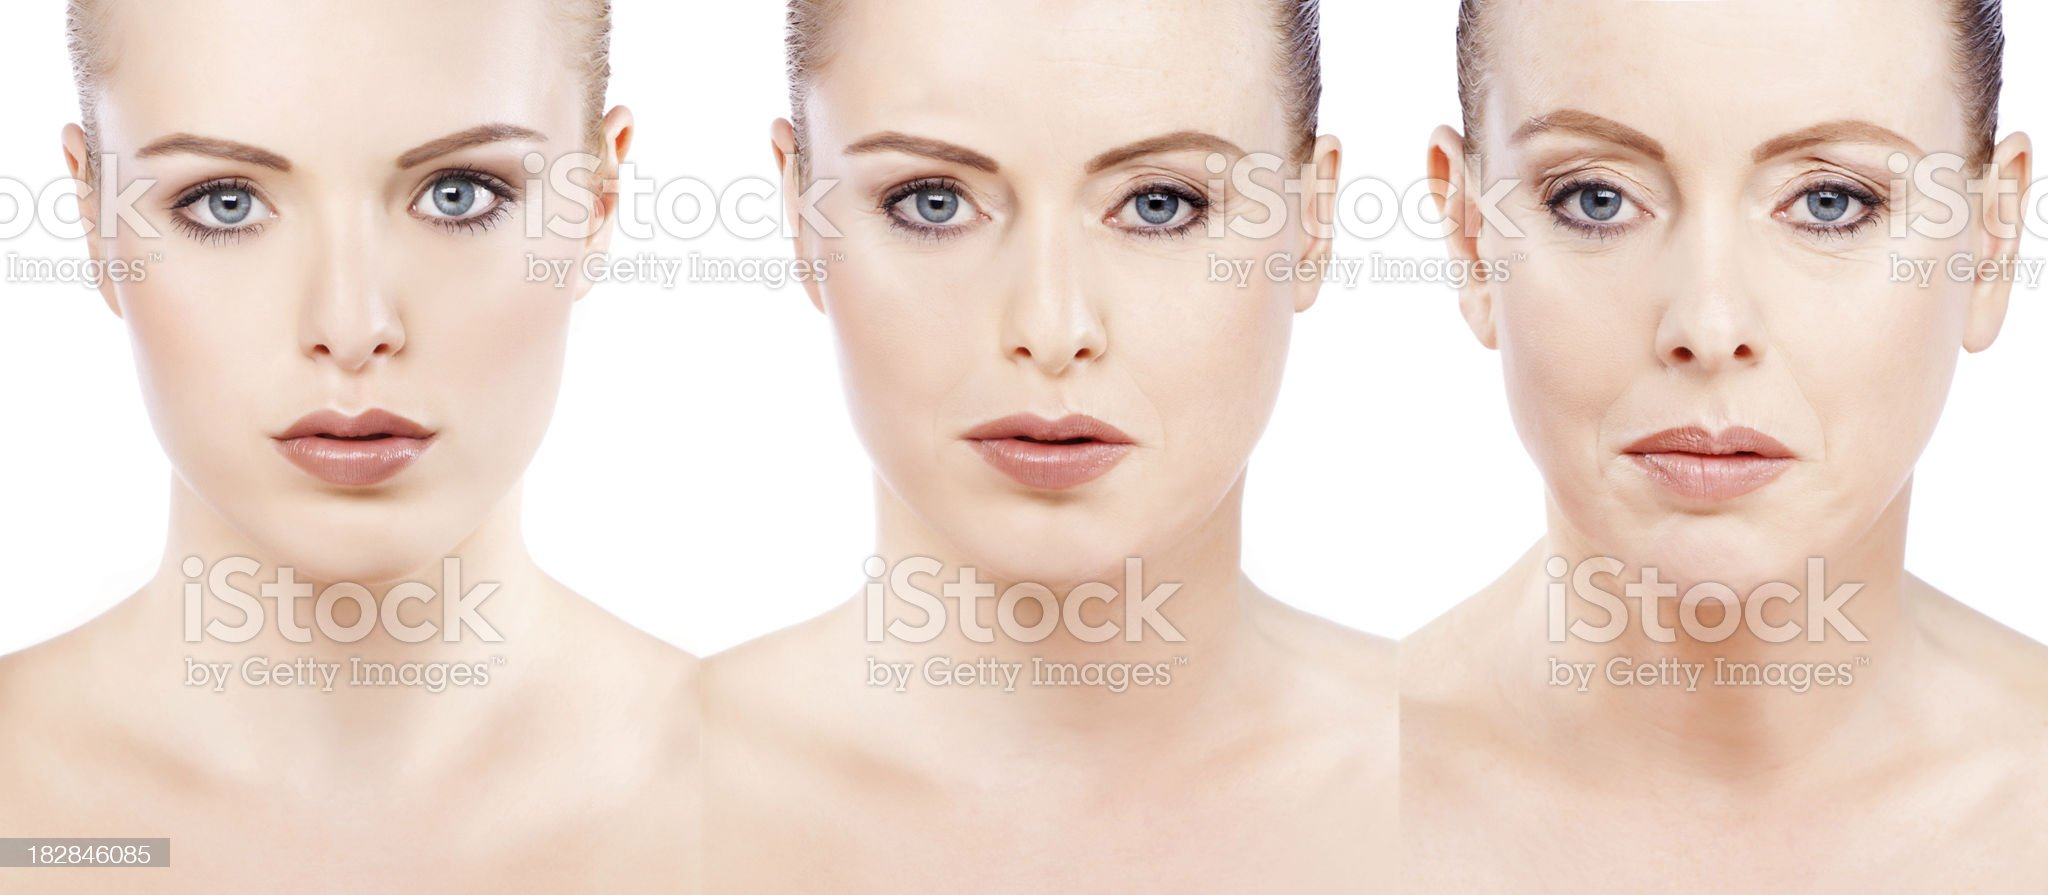 process of aging royalty-free stock photo